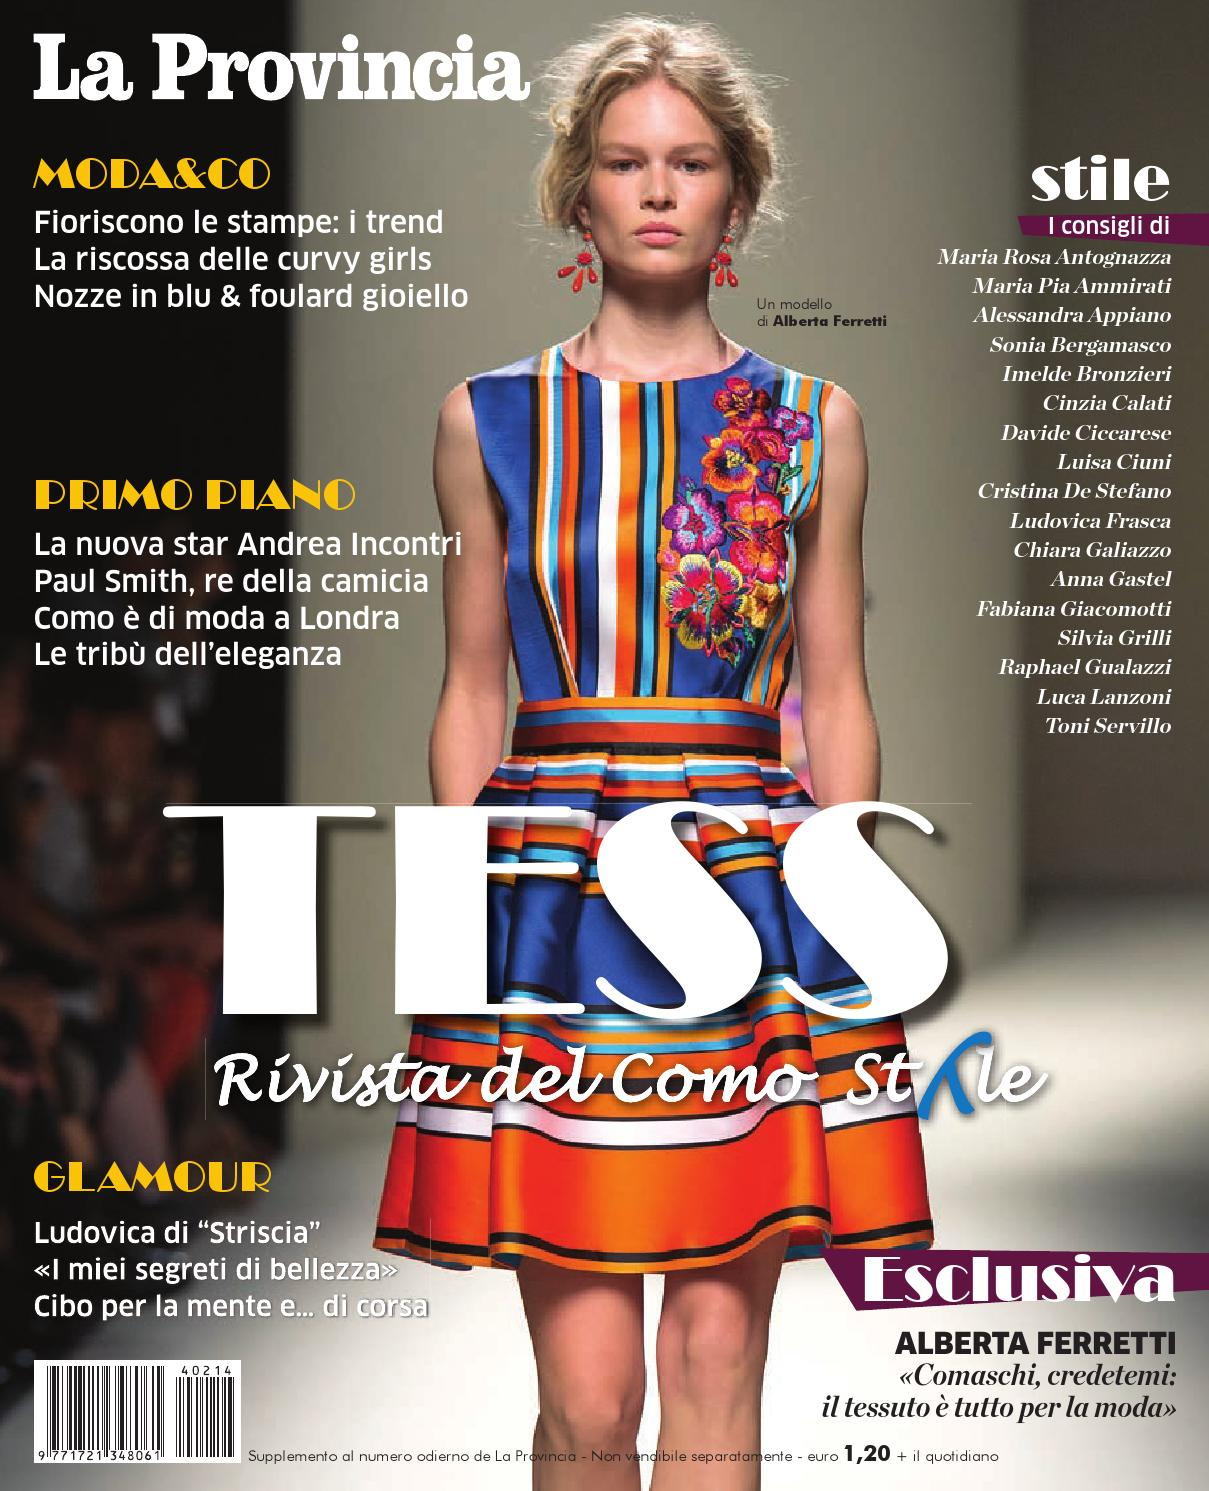 9e932088b6 Tess by antonella corengia - issuu